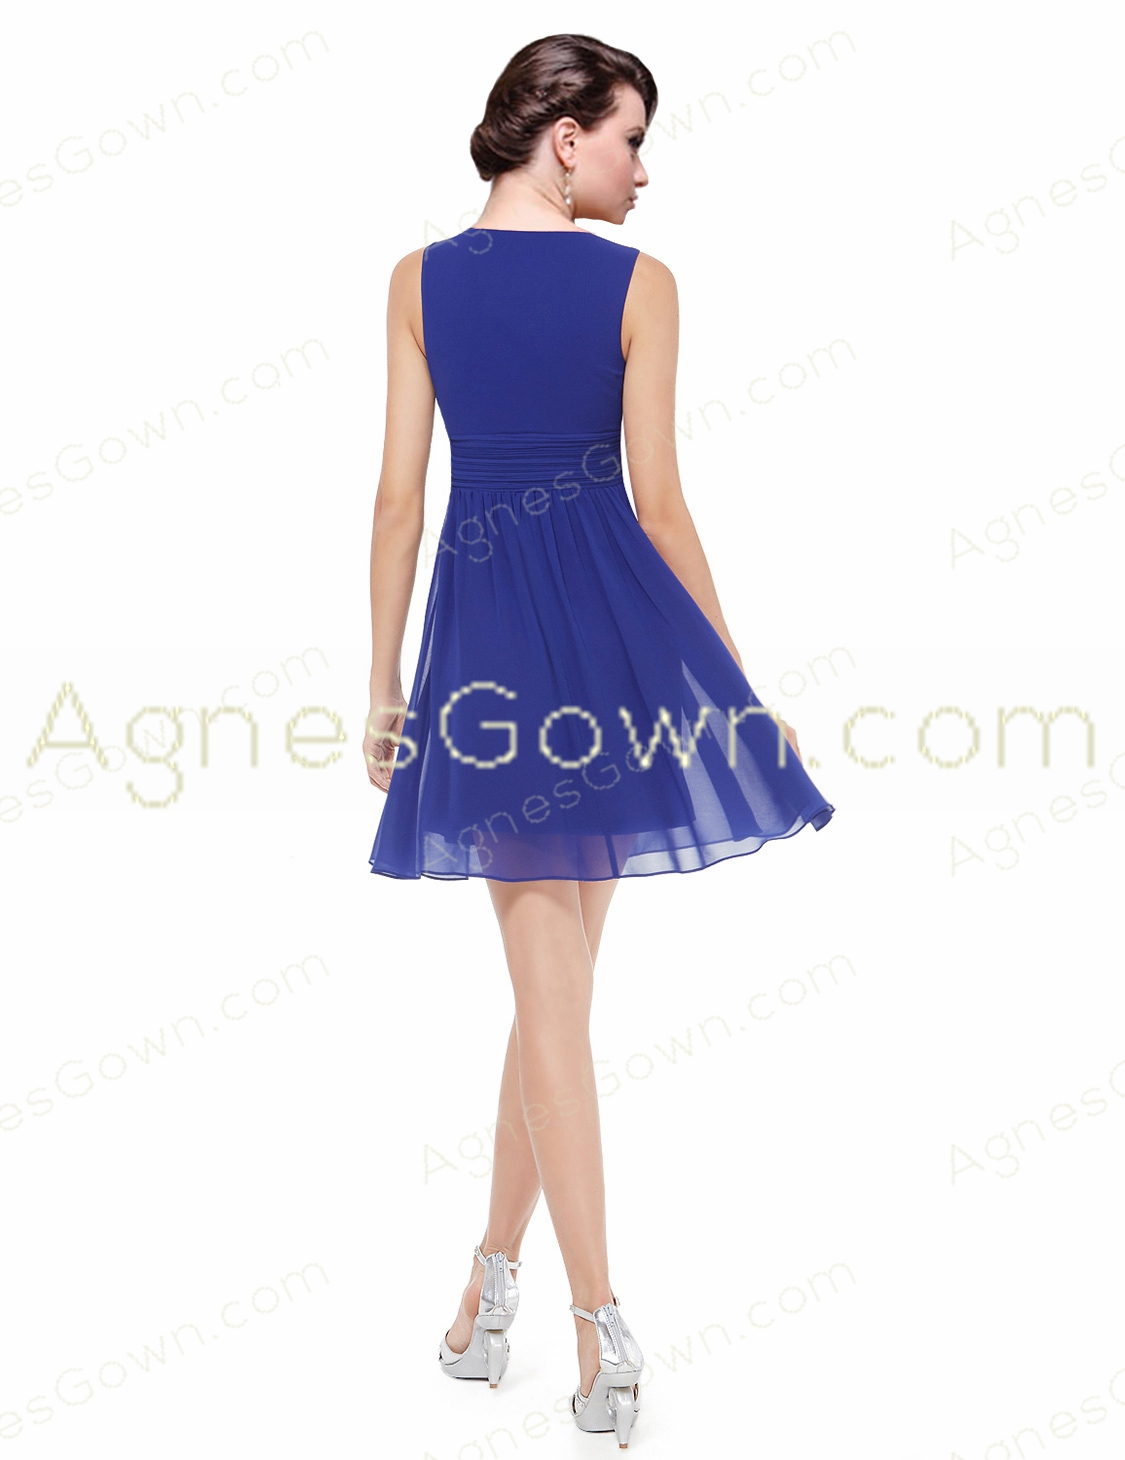 Short Length Royal Blue Chiffon Junior Prom Dress